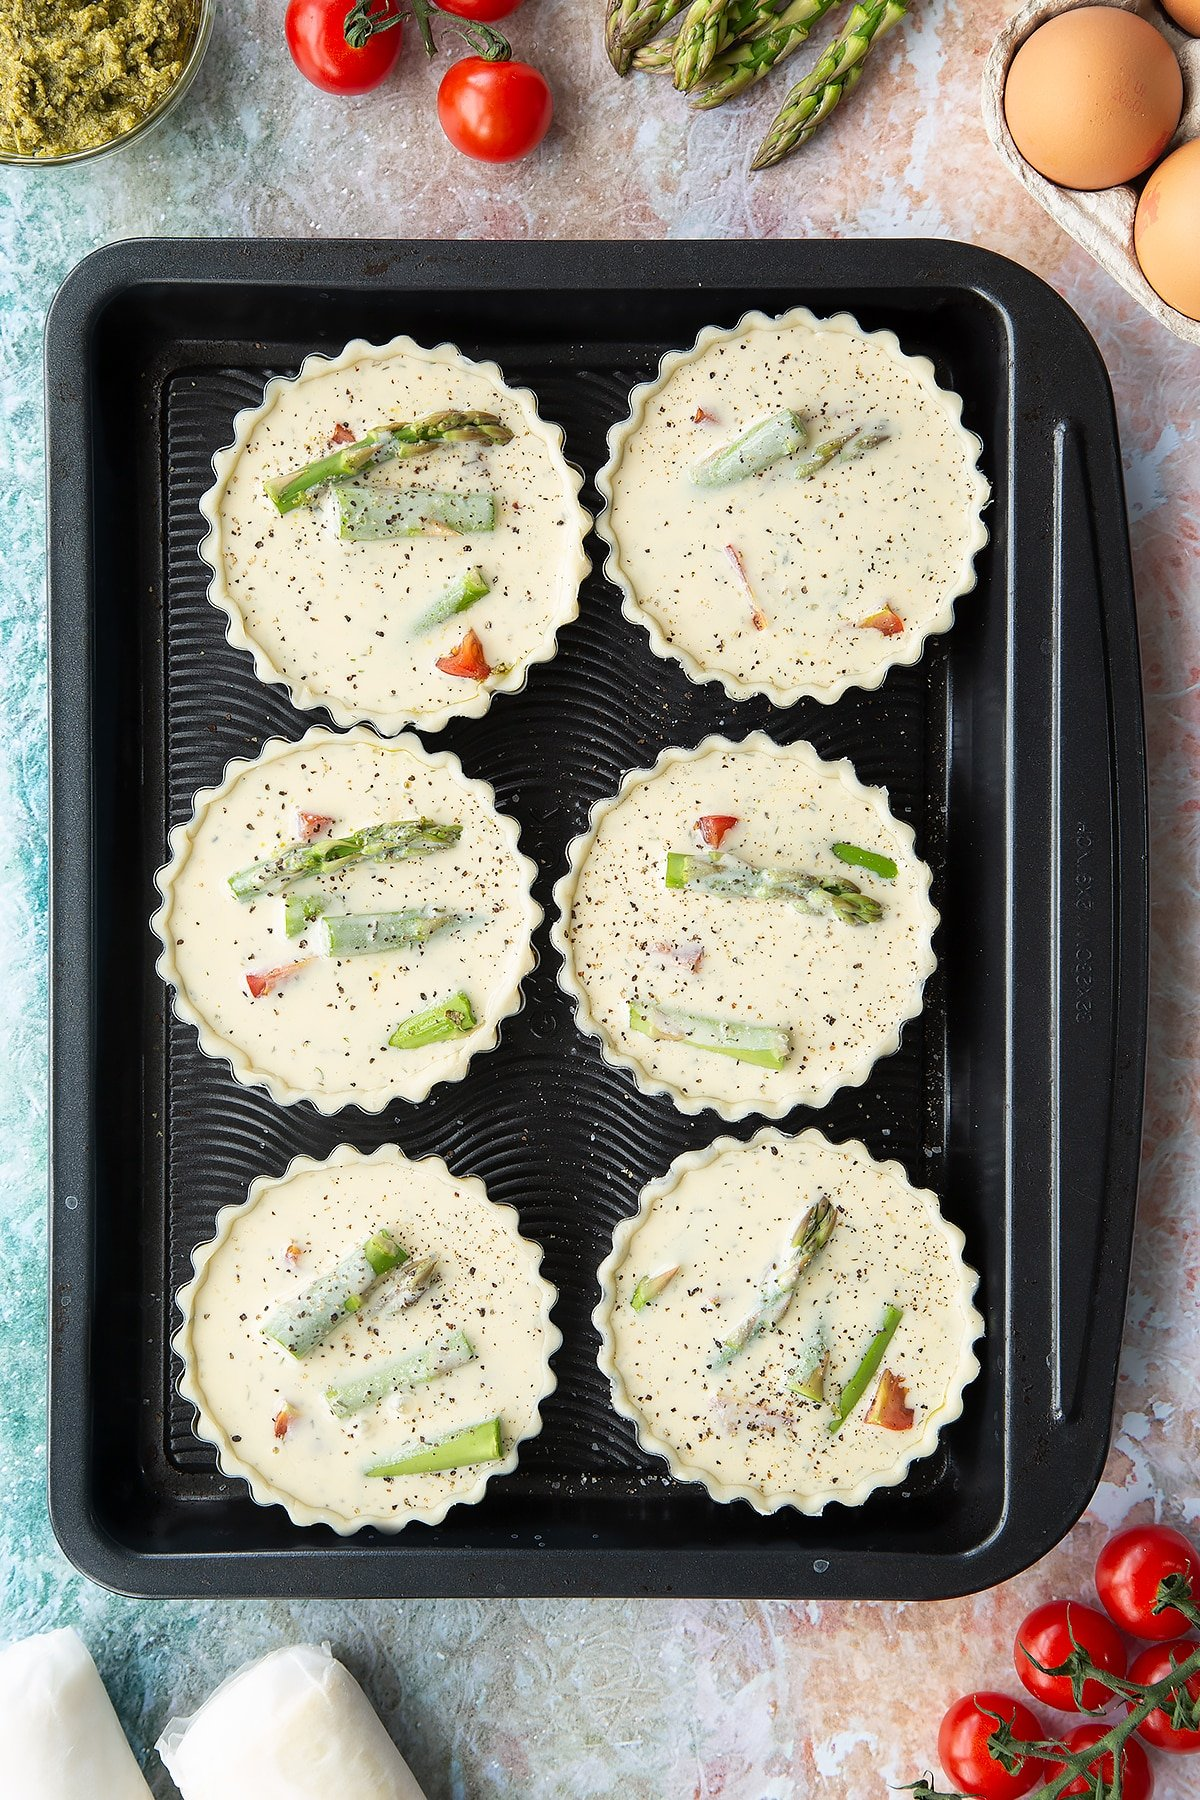 Six tartlet tins on a baking tray. Pastry is fitted in the tins, which is filled with tart filling, cherry tomato and asparagus pieces. Ingredients to make asparagus tartlets surround the tray.